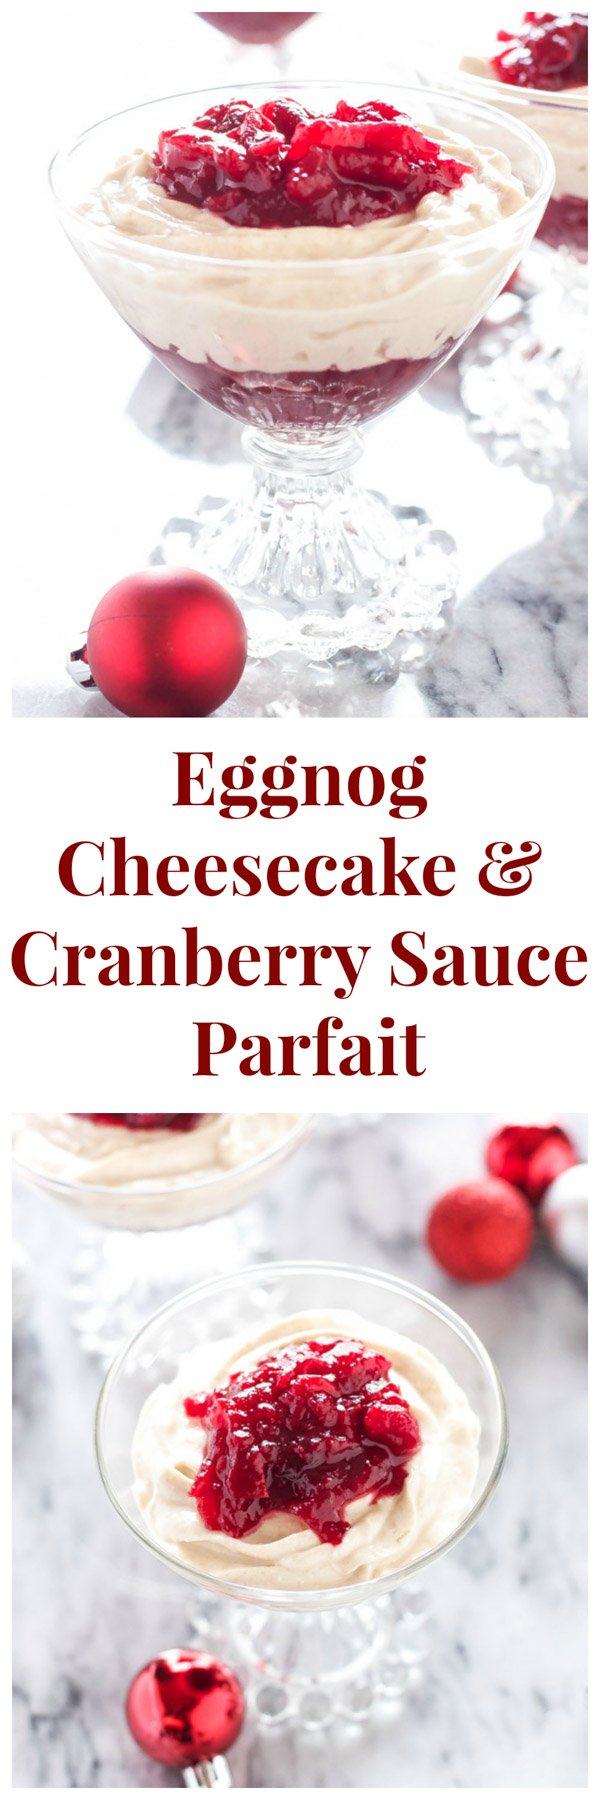 Eggnog Cheesecake and Cranberry Sauce Parfaits | Layers of no bake eggnog cheesecake and cranberry sauce are the perfect show stopping holiday dessert! | www.reciperunner.com